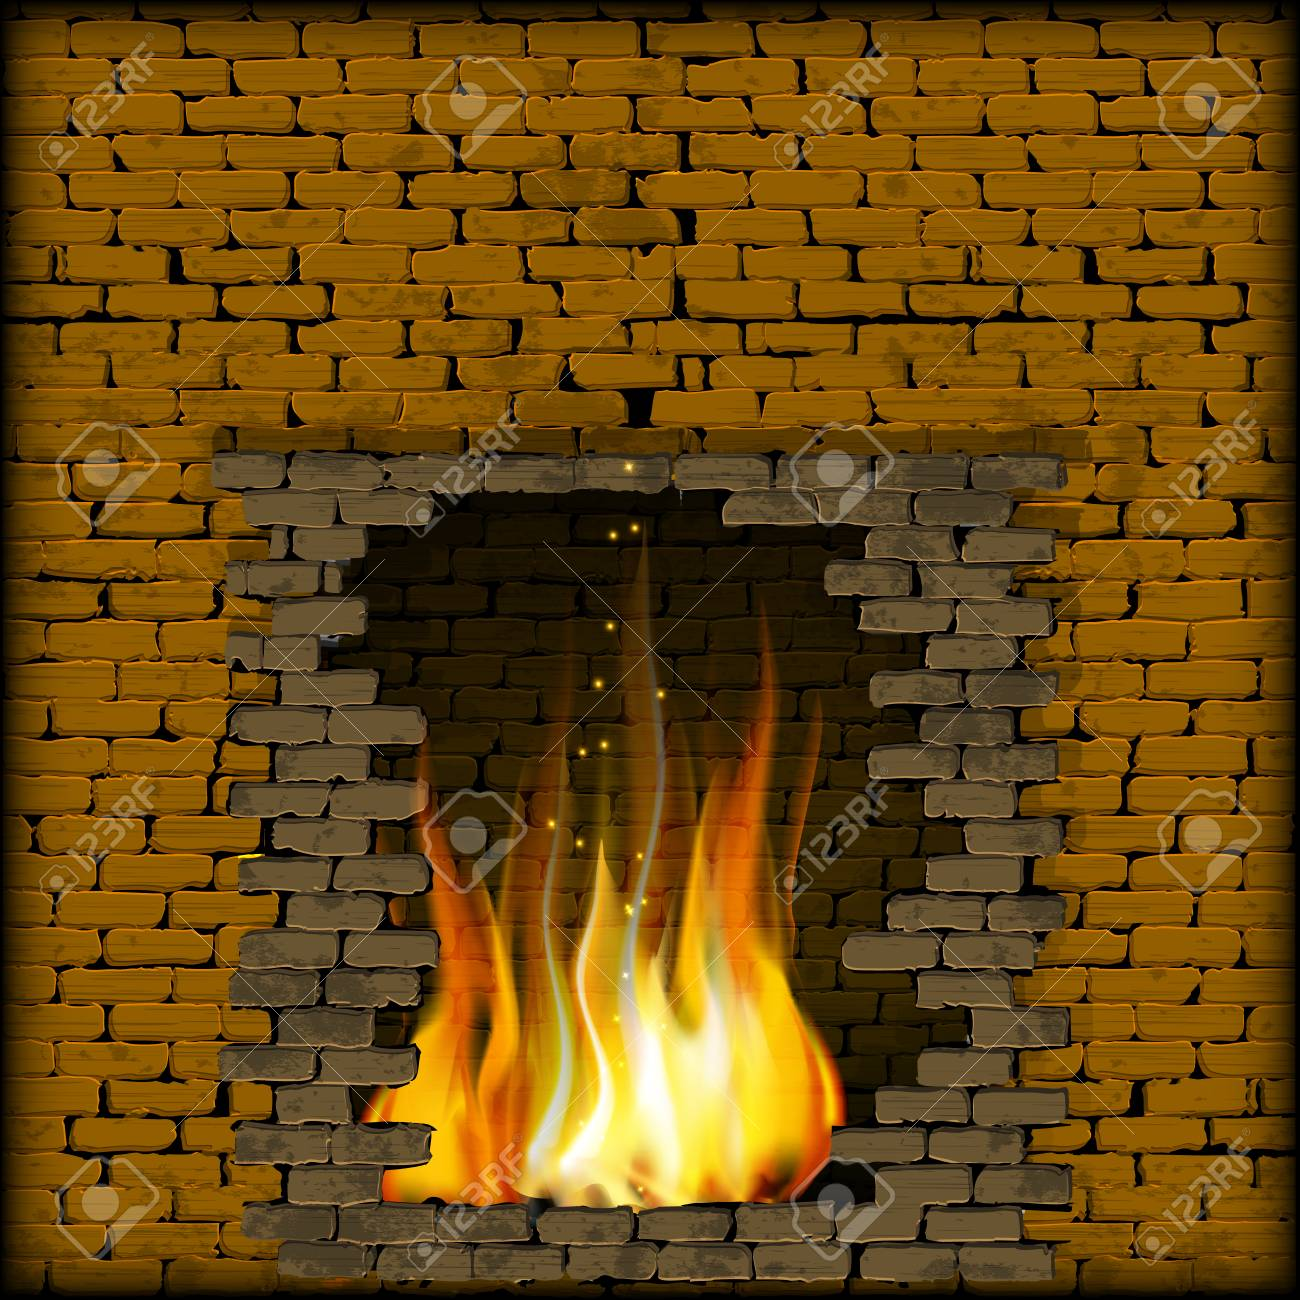 Vector Illustration Fire In The Fireplace Of The Old Brick Wall